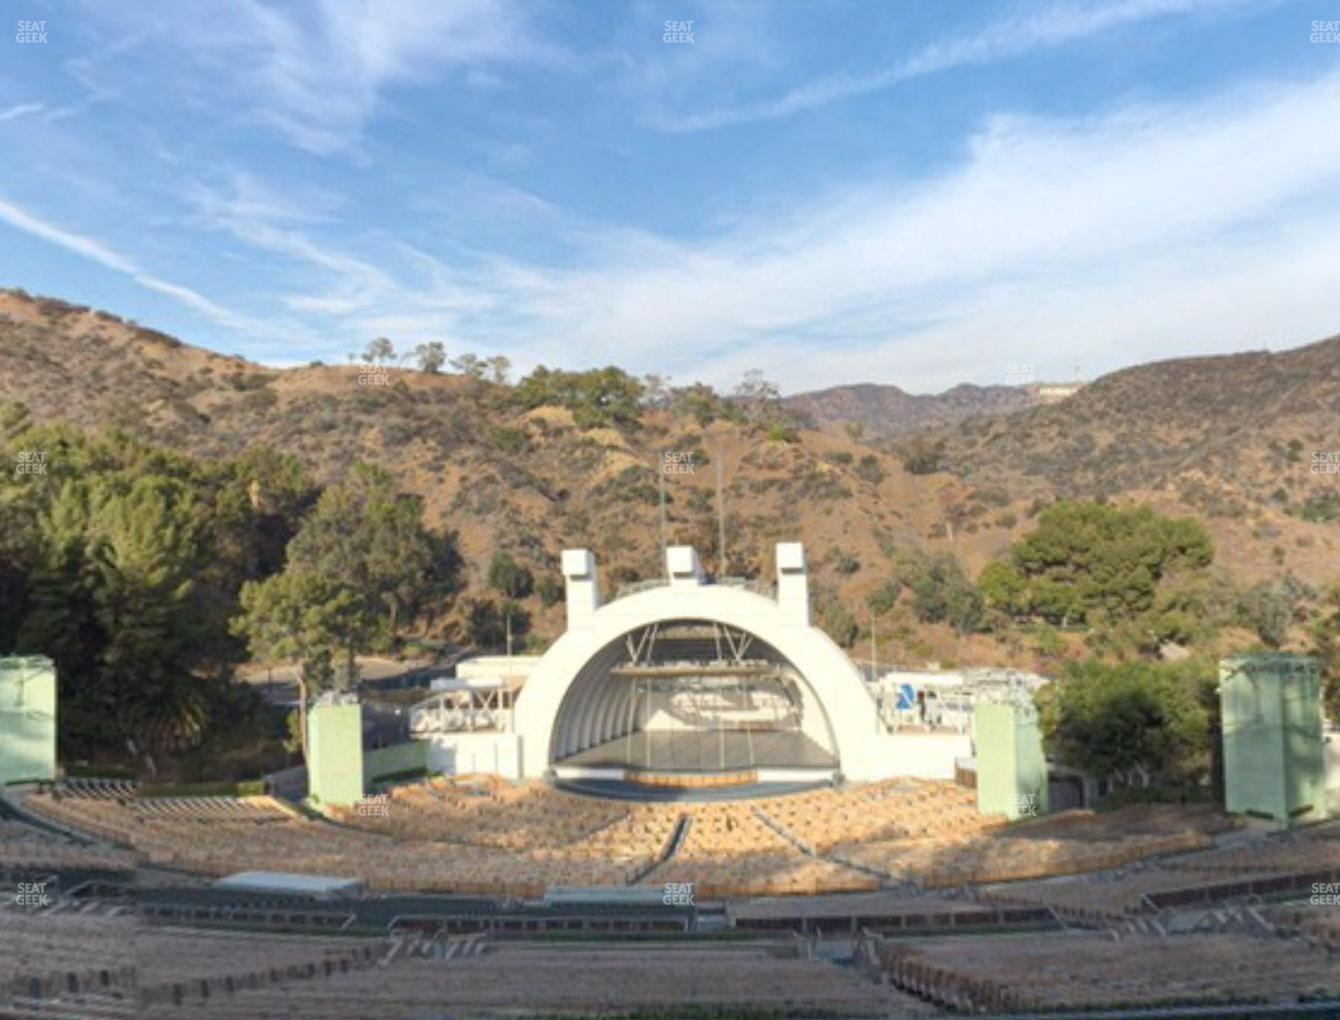 Concert at Hollywood Bowl Section R 1 View